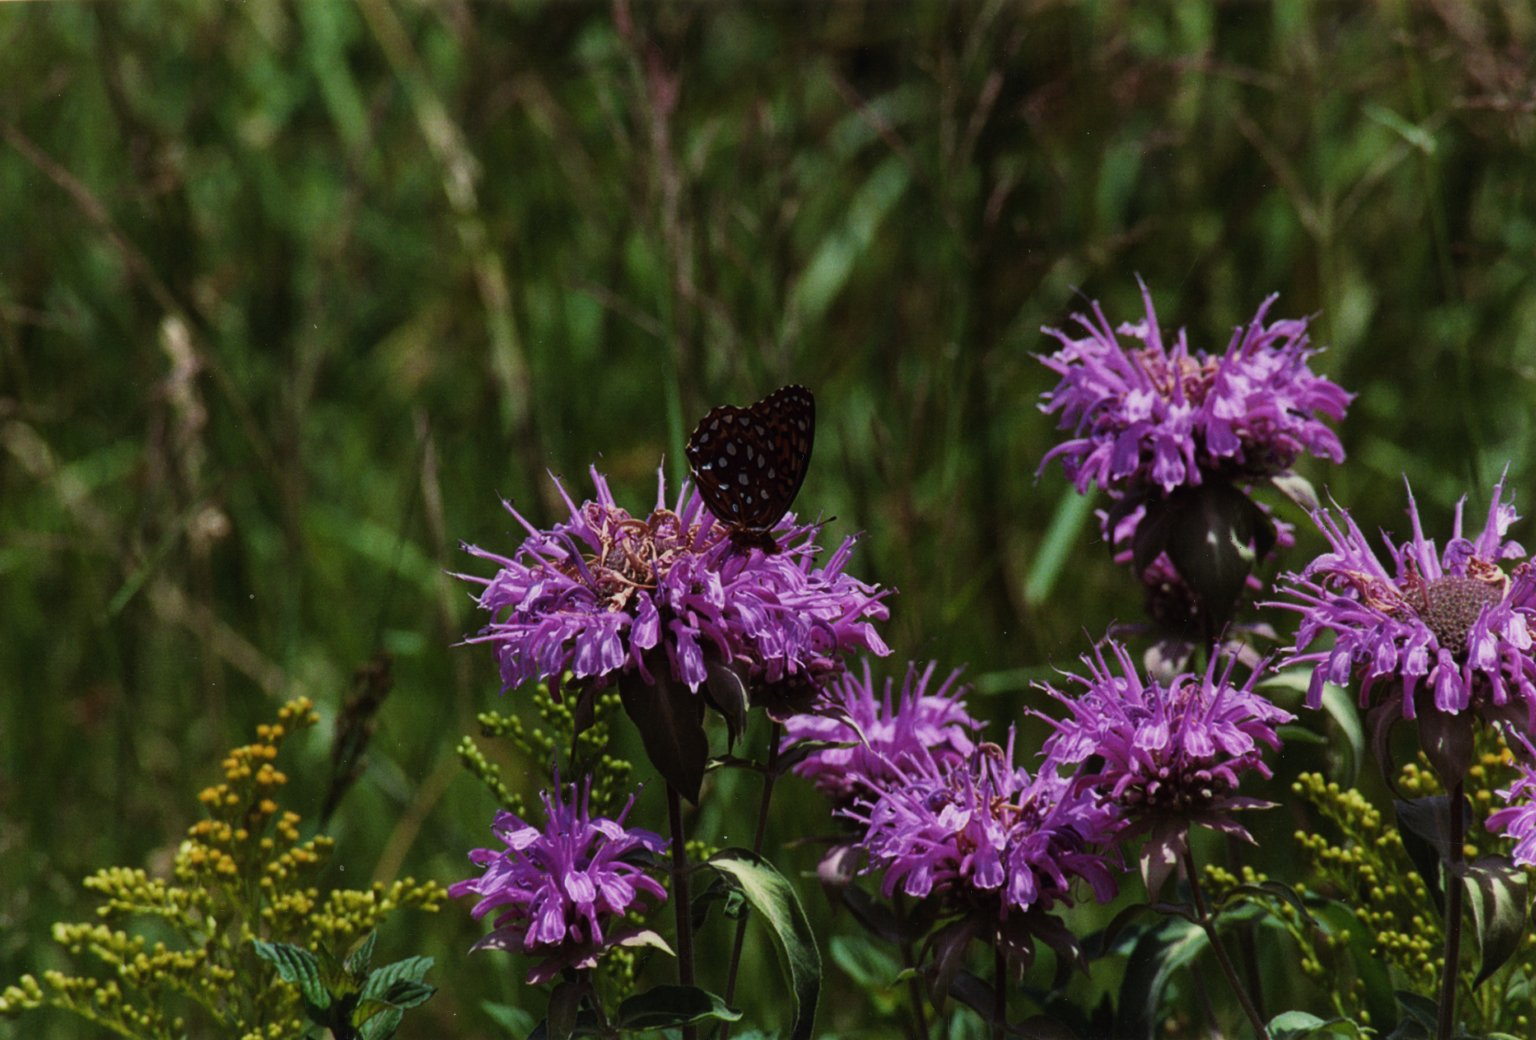 Close up of black and white butterfly and purple flowers